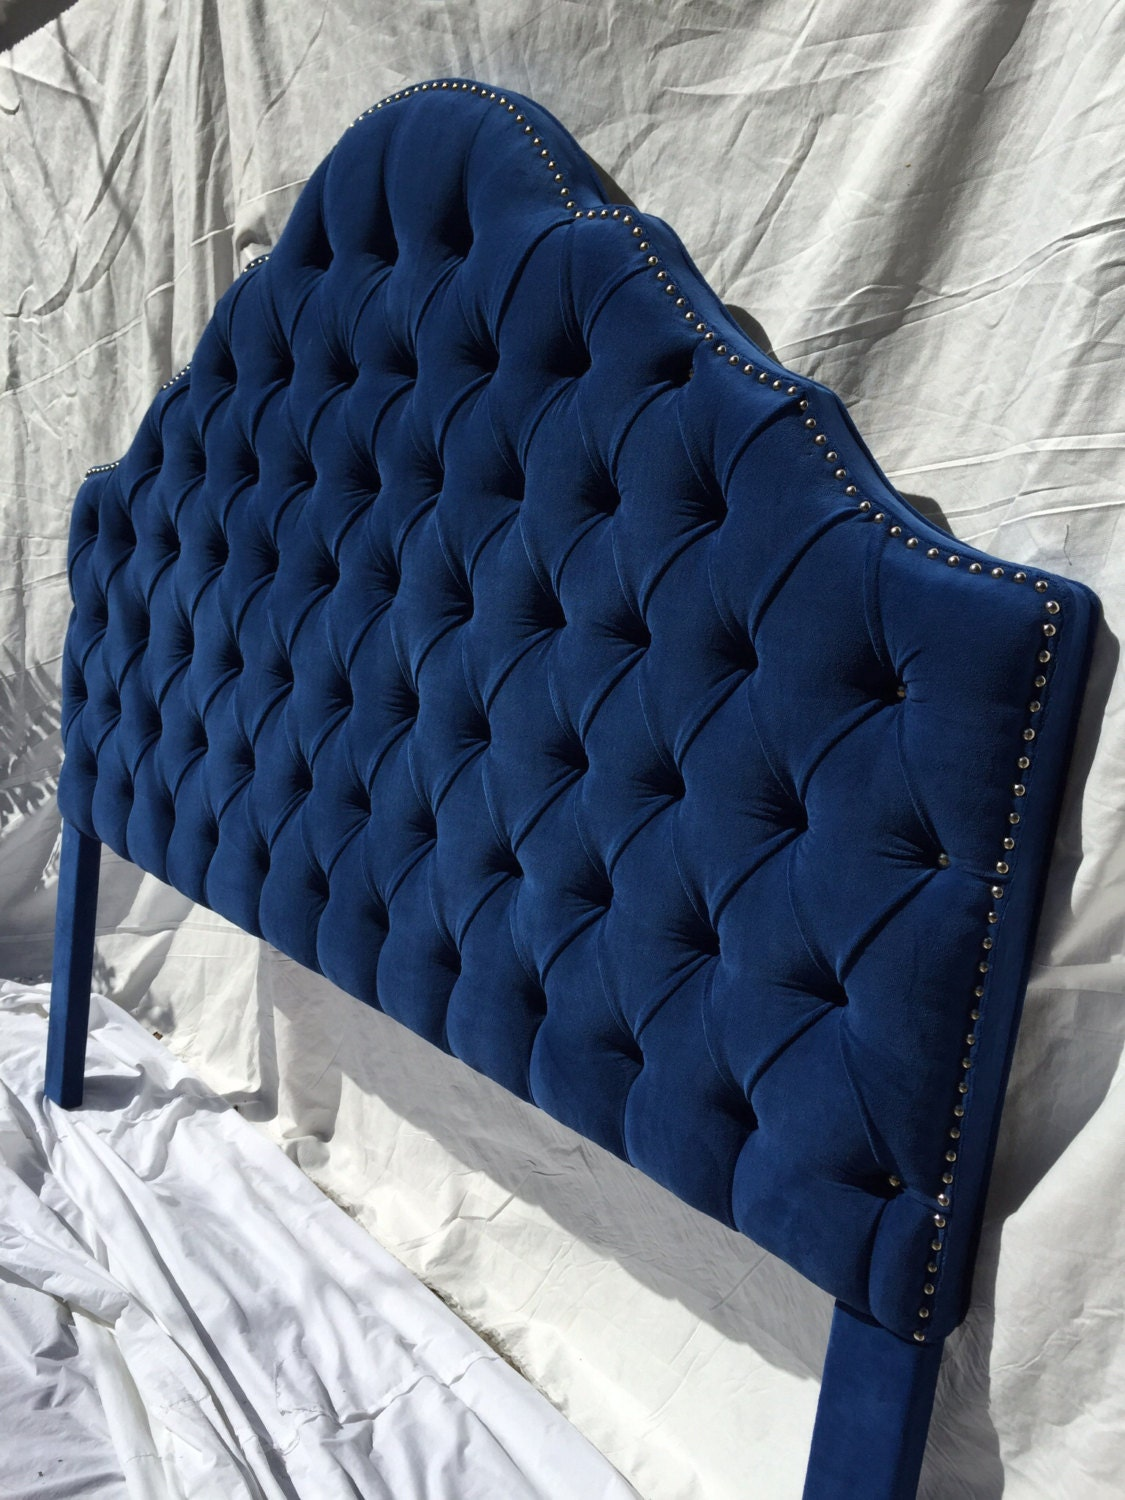 Royal Blue Extra Tall King Size Tufted Headboard With A Row Of